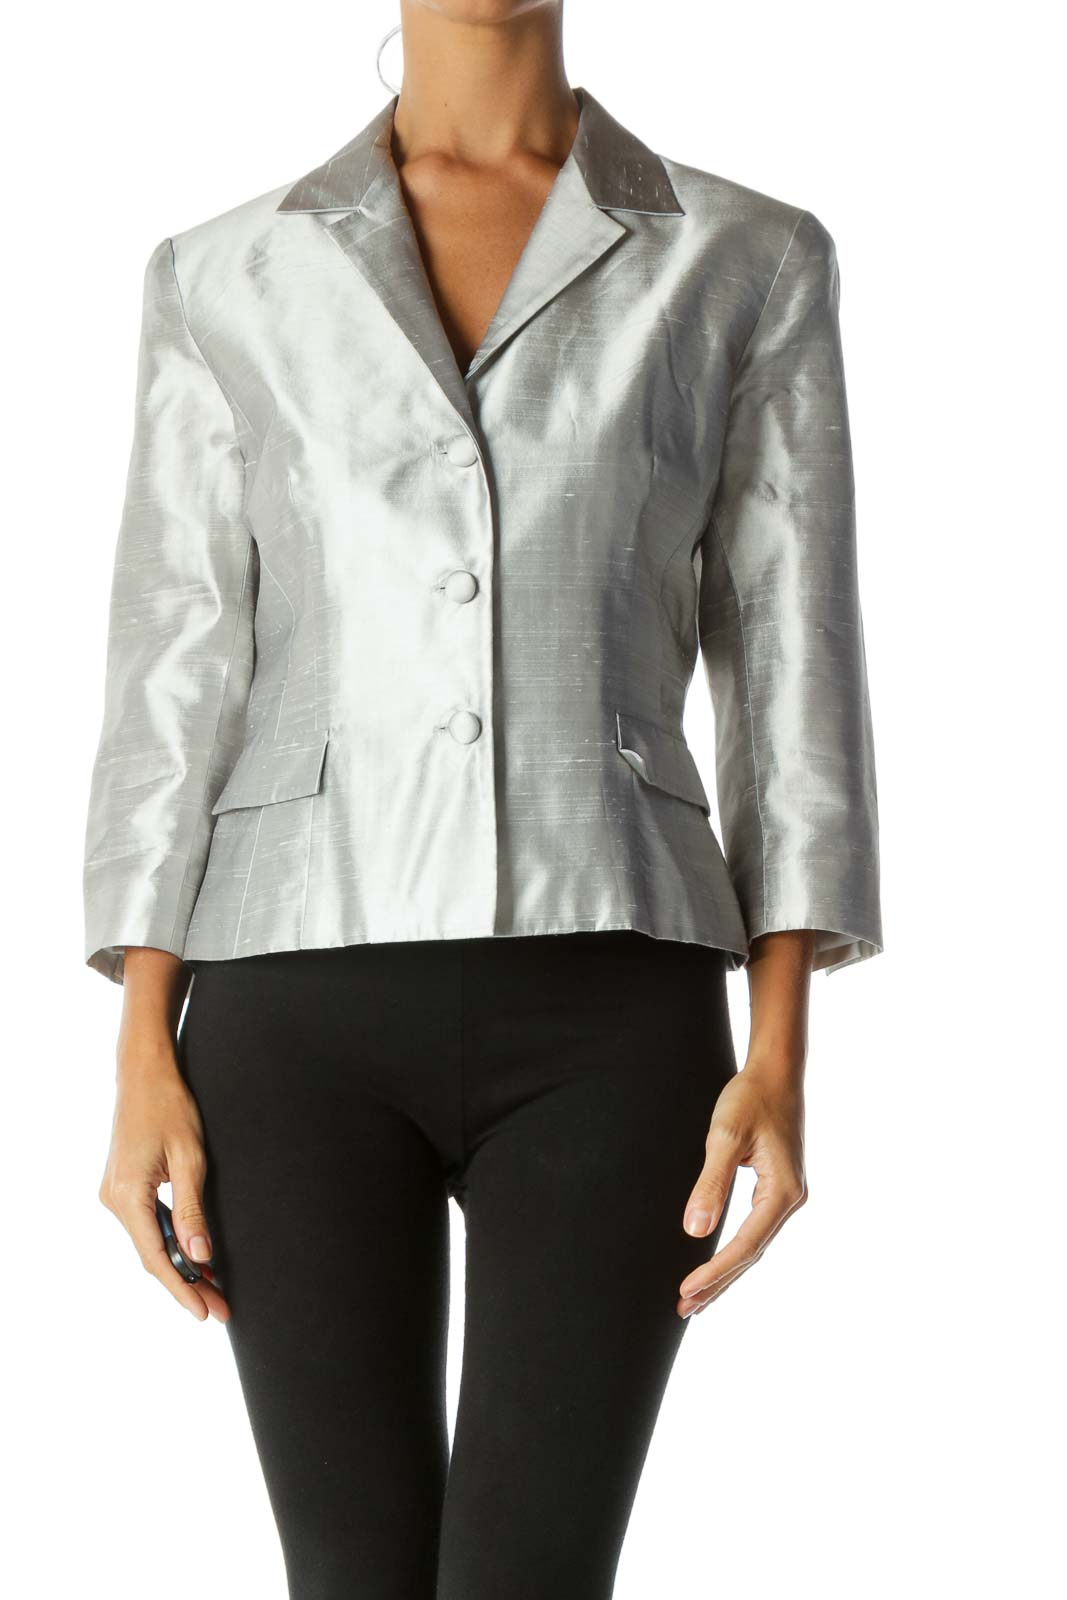 Silver Textured Fabric Buttoned Padded Shoulders Shiny Blazer Front